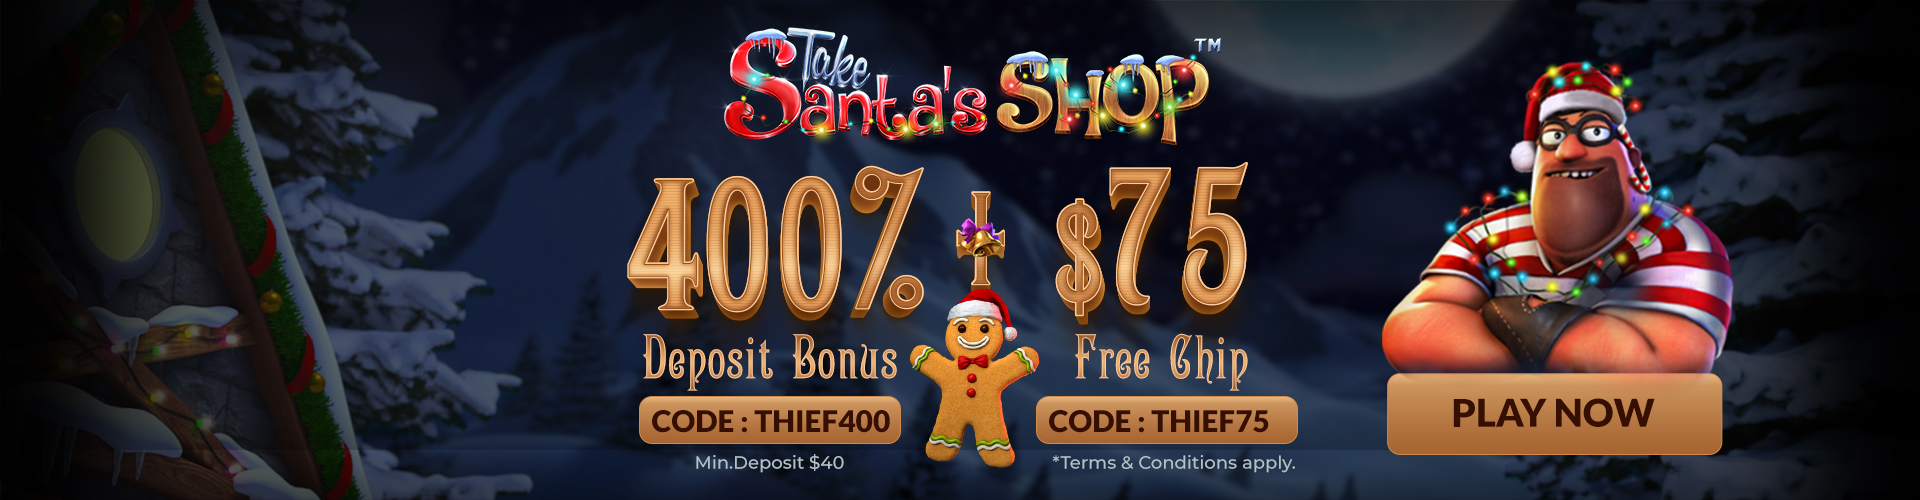 TakeSantas Shop